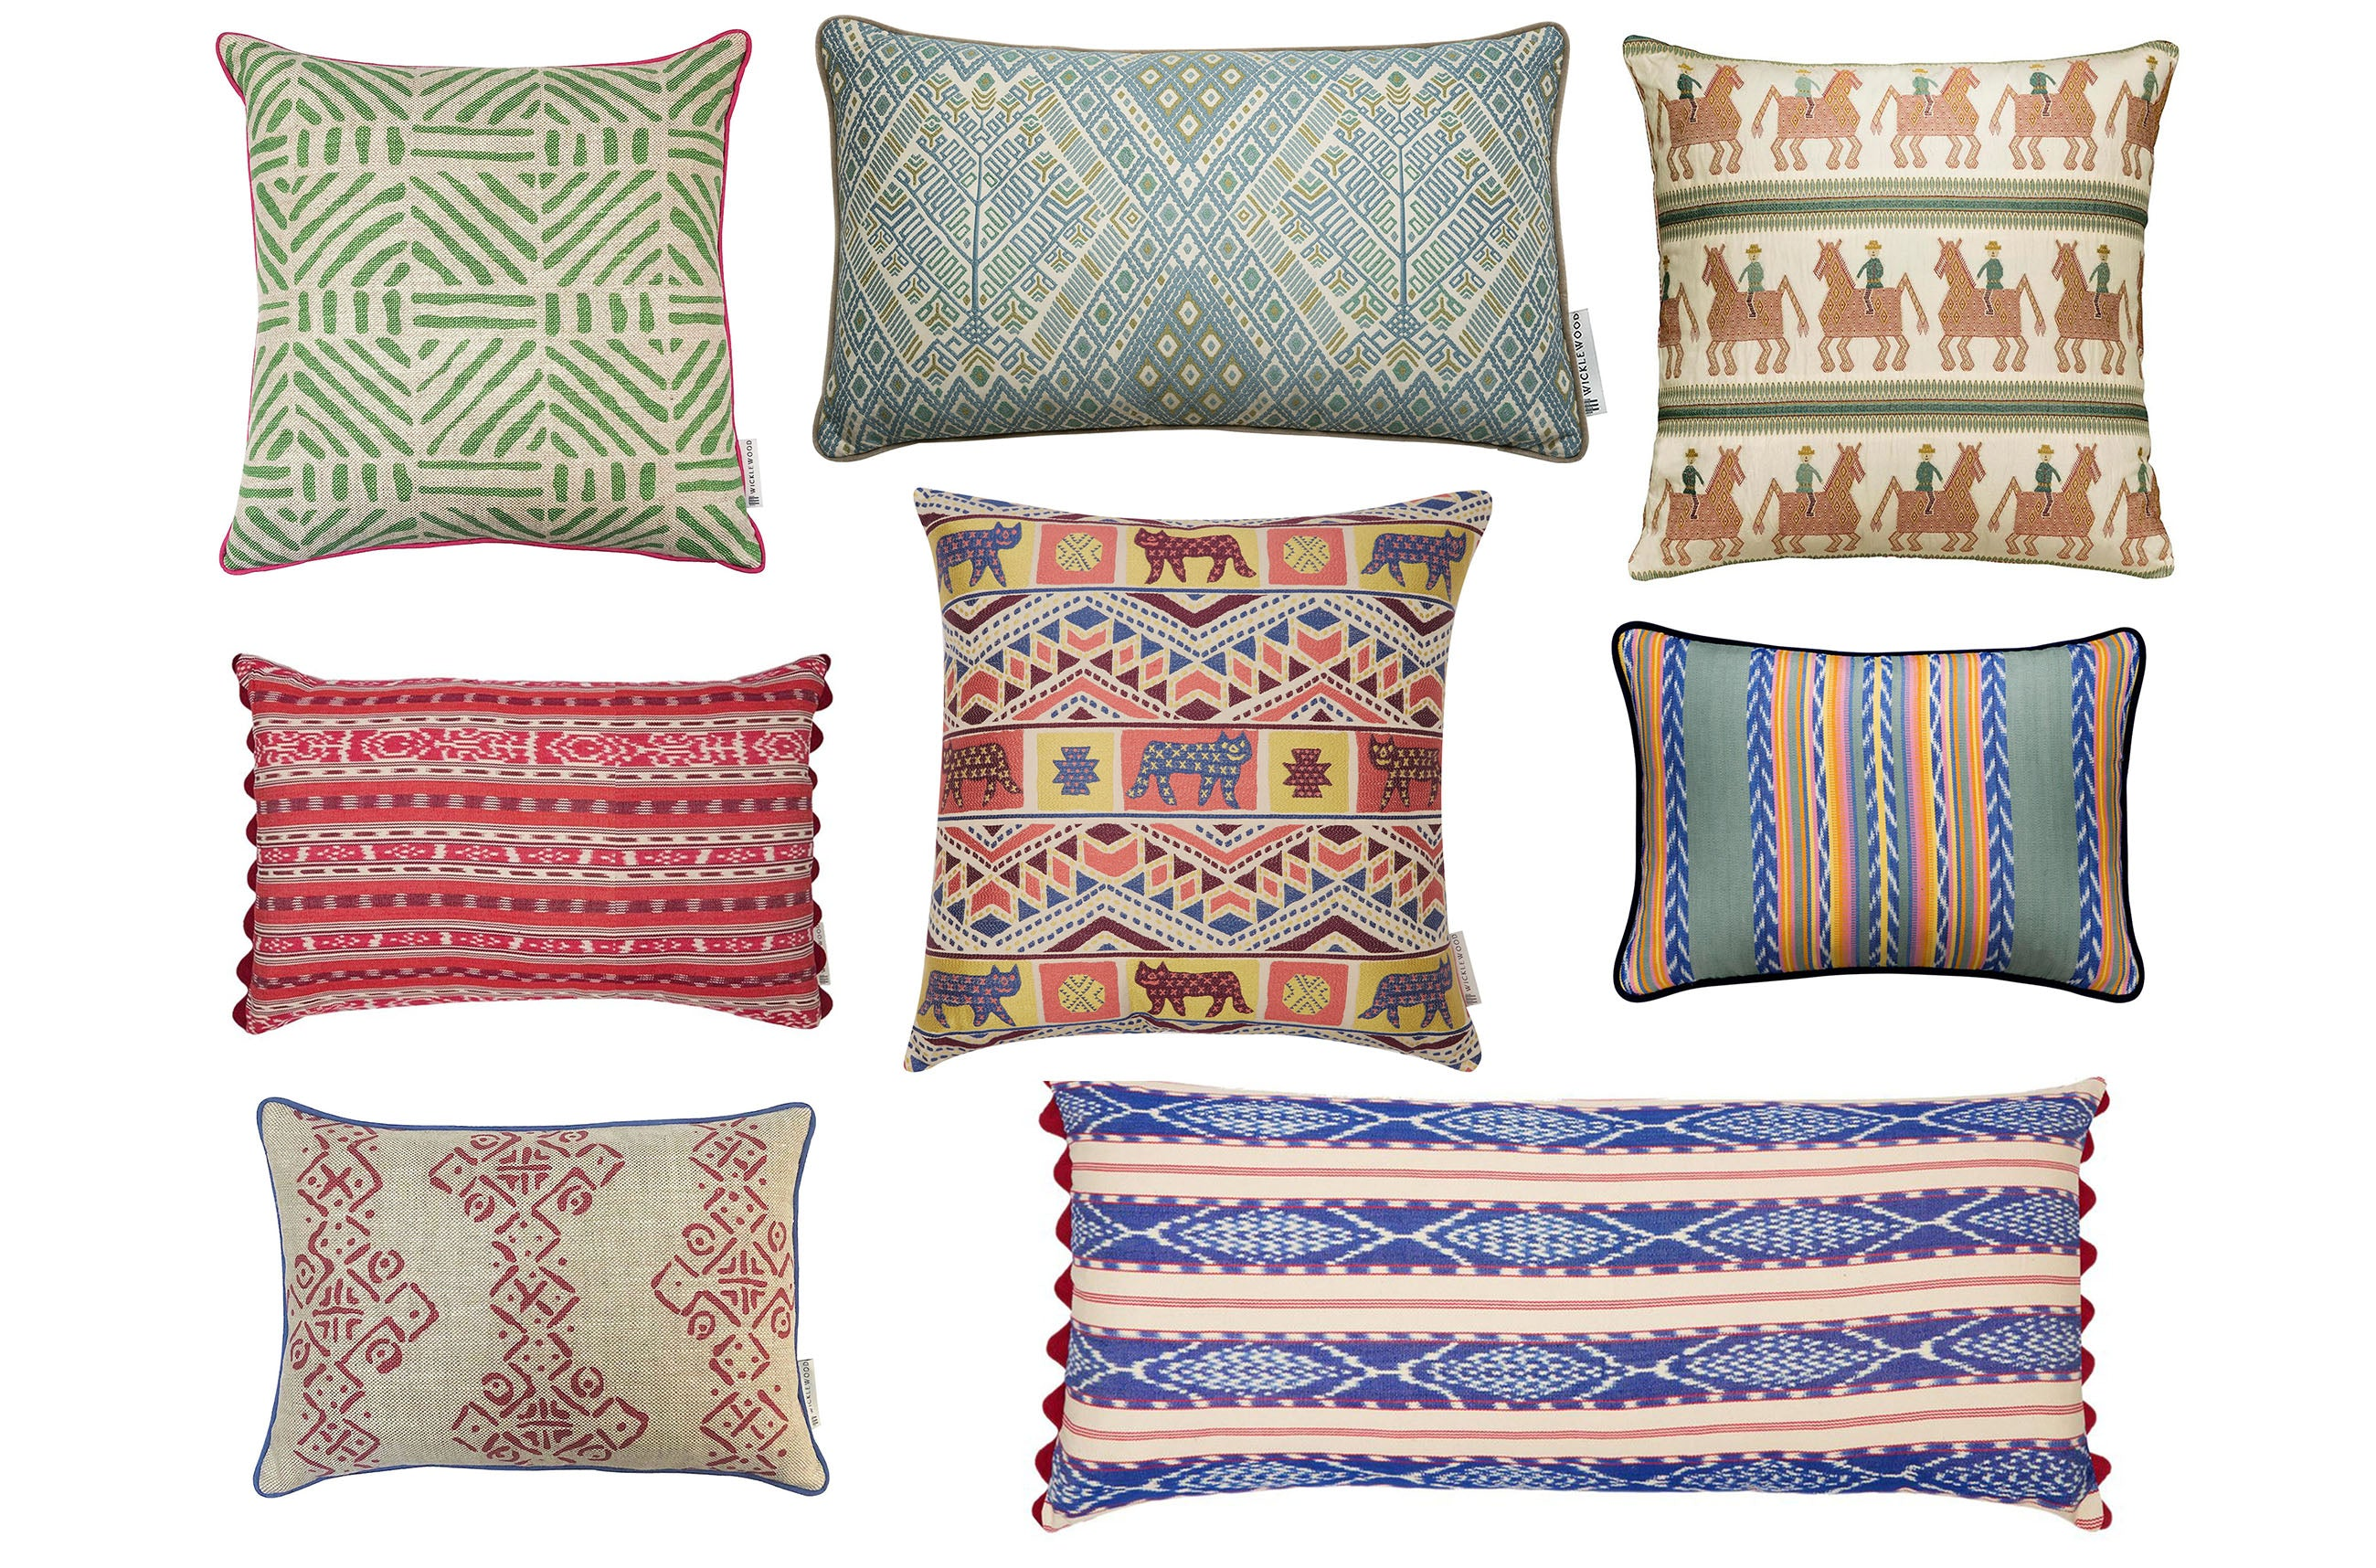 cushions for the bohemian